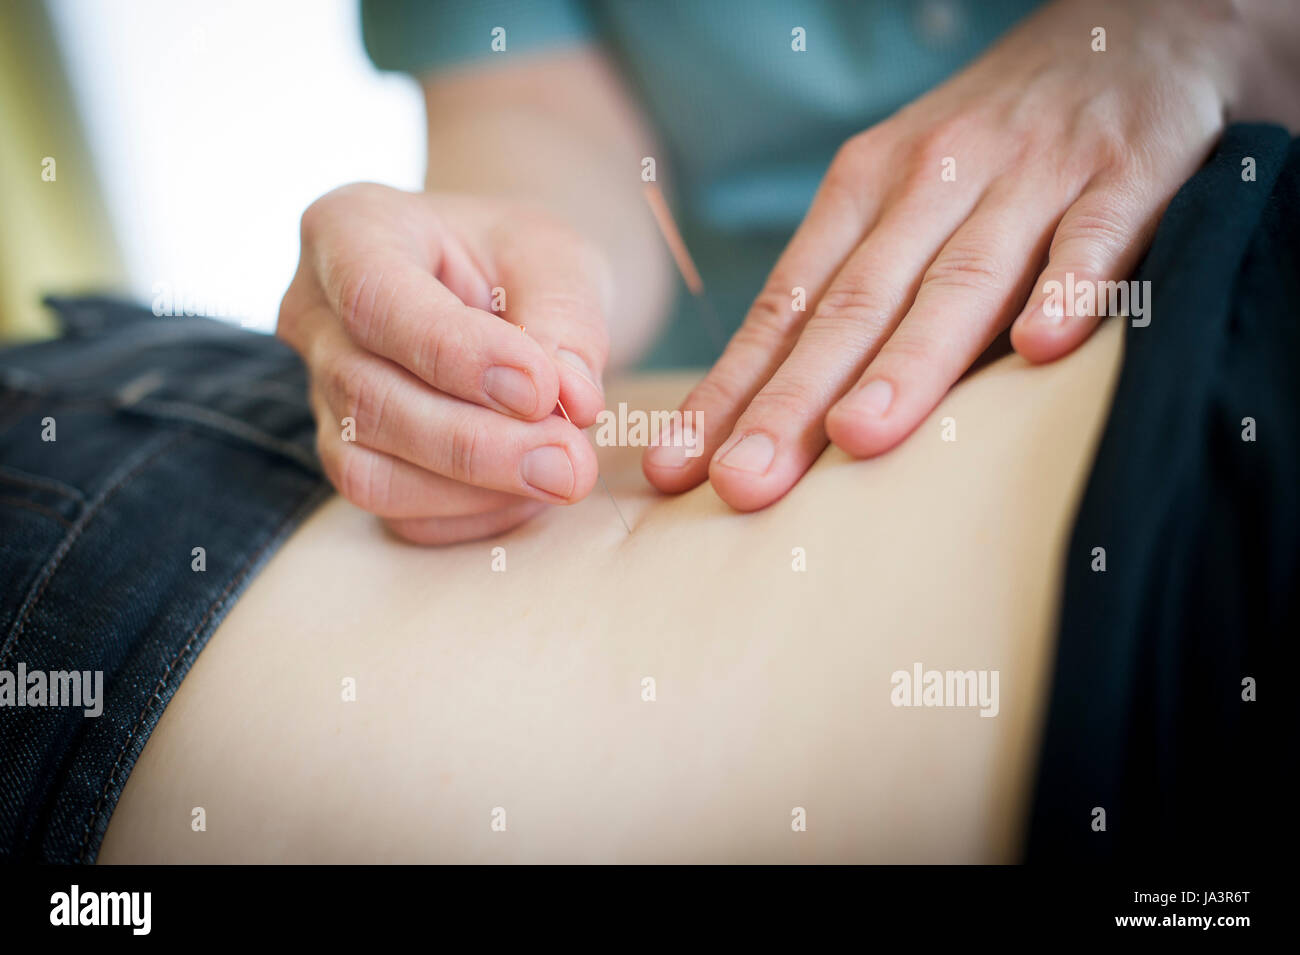 Acupuncture in progress at this healing centre. - Stock Image